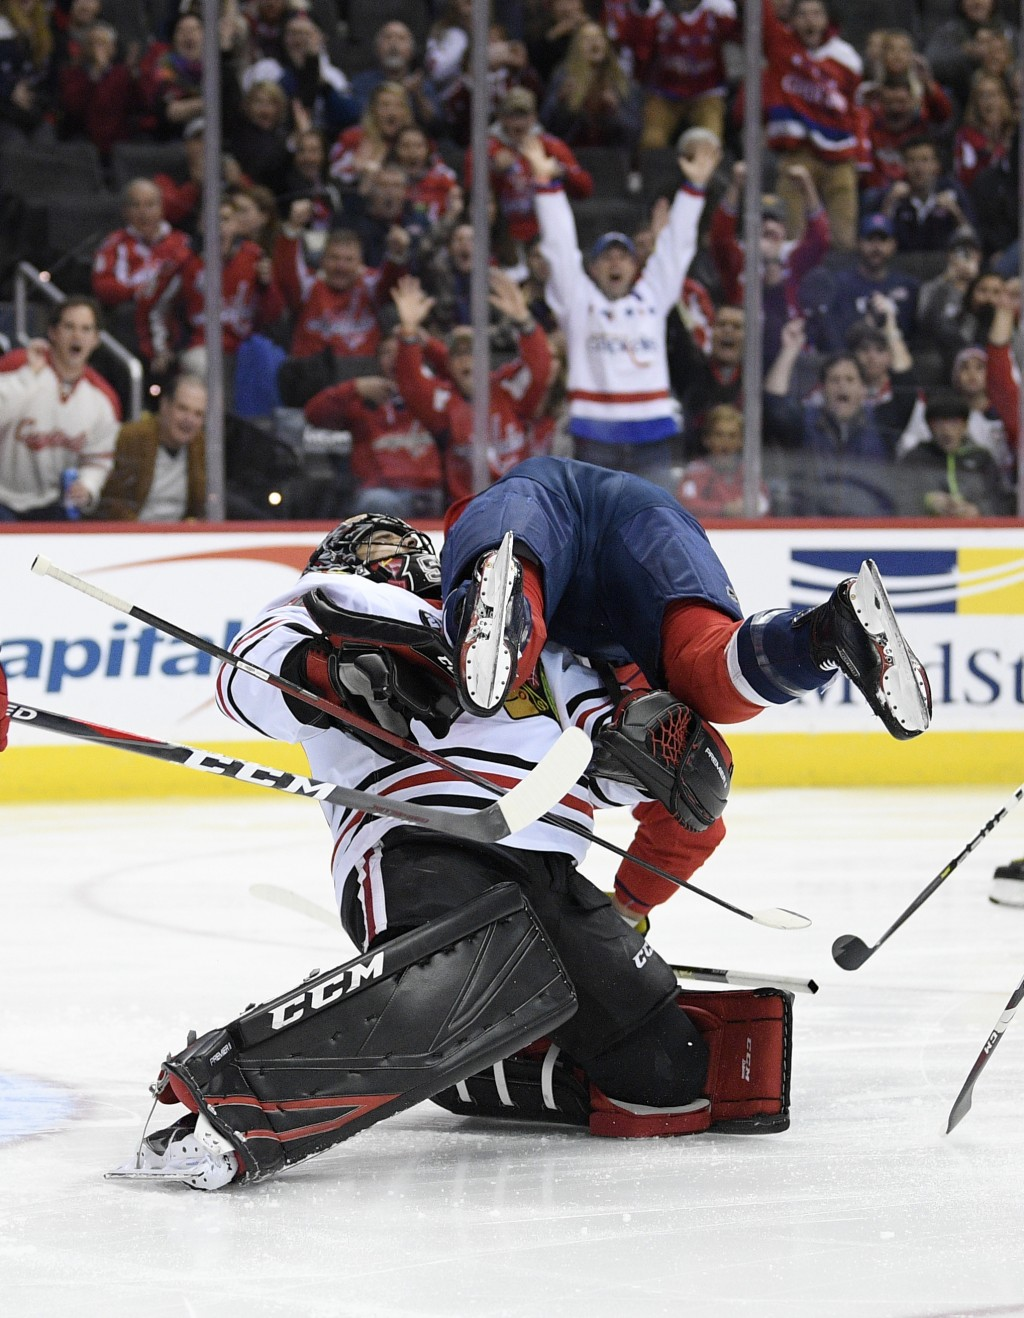 Washington Capitals right wing Tom Wilson, top, collides with Chicago Blackhawks goaltender Corey Crawford, bottom, after he scored a goal during the ...